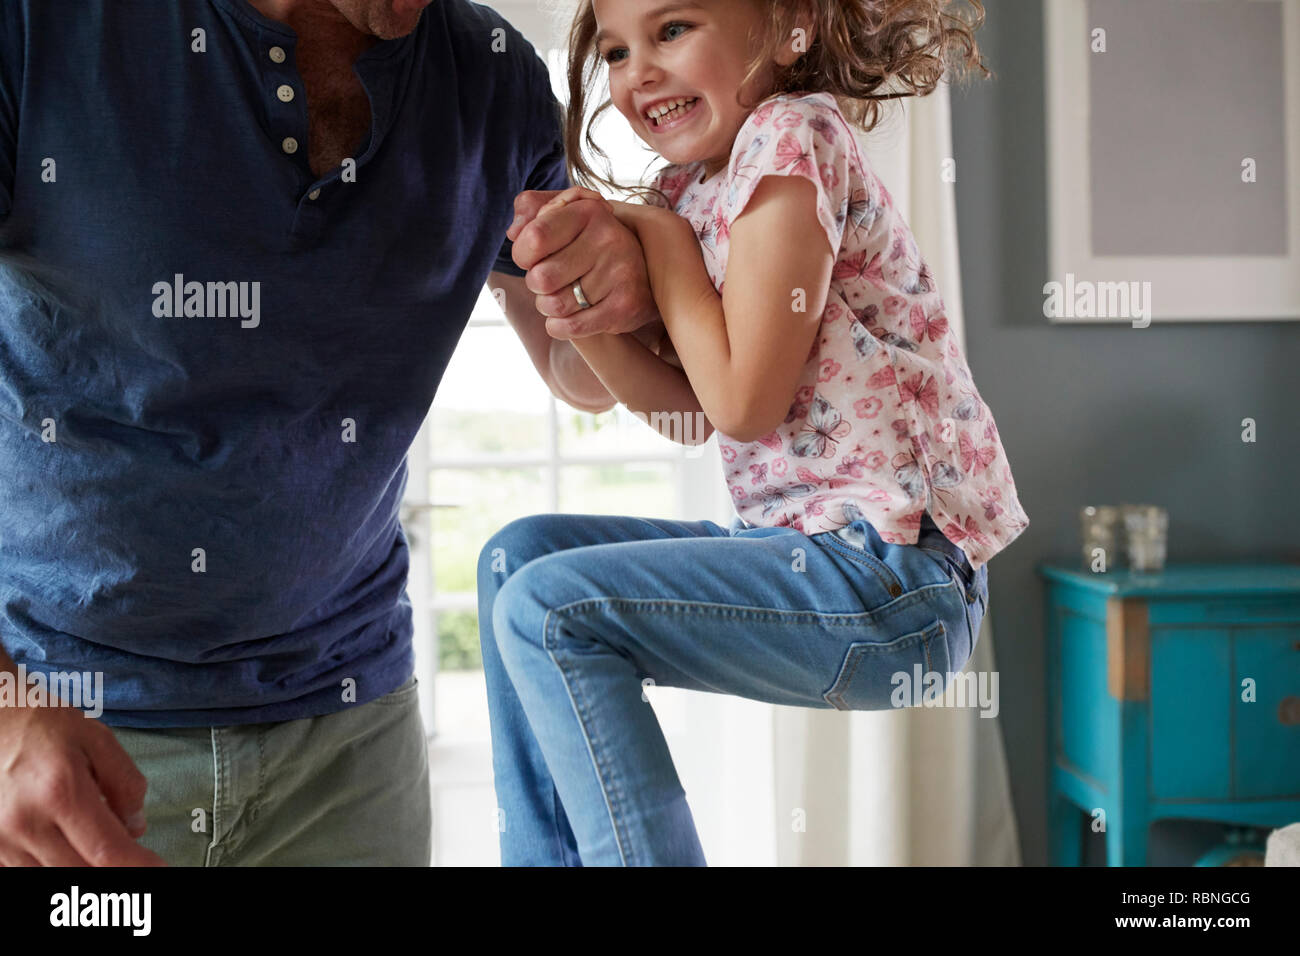 Girl jumping up and holding dad's hand at home, mid section - Stock Image